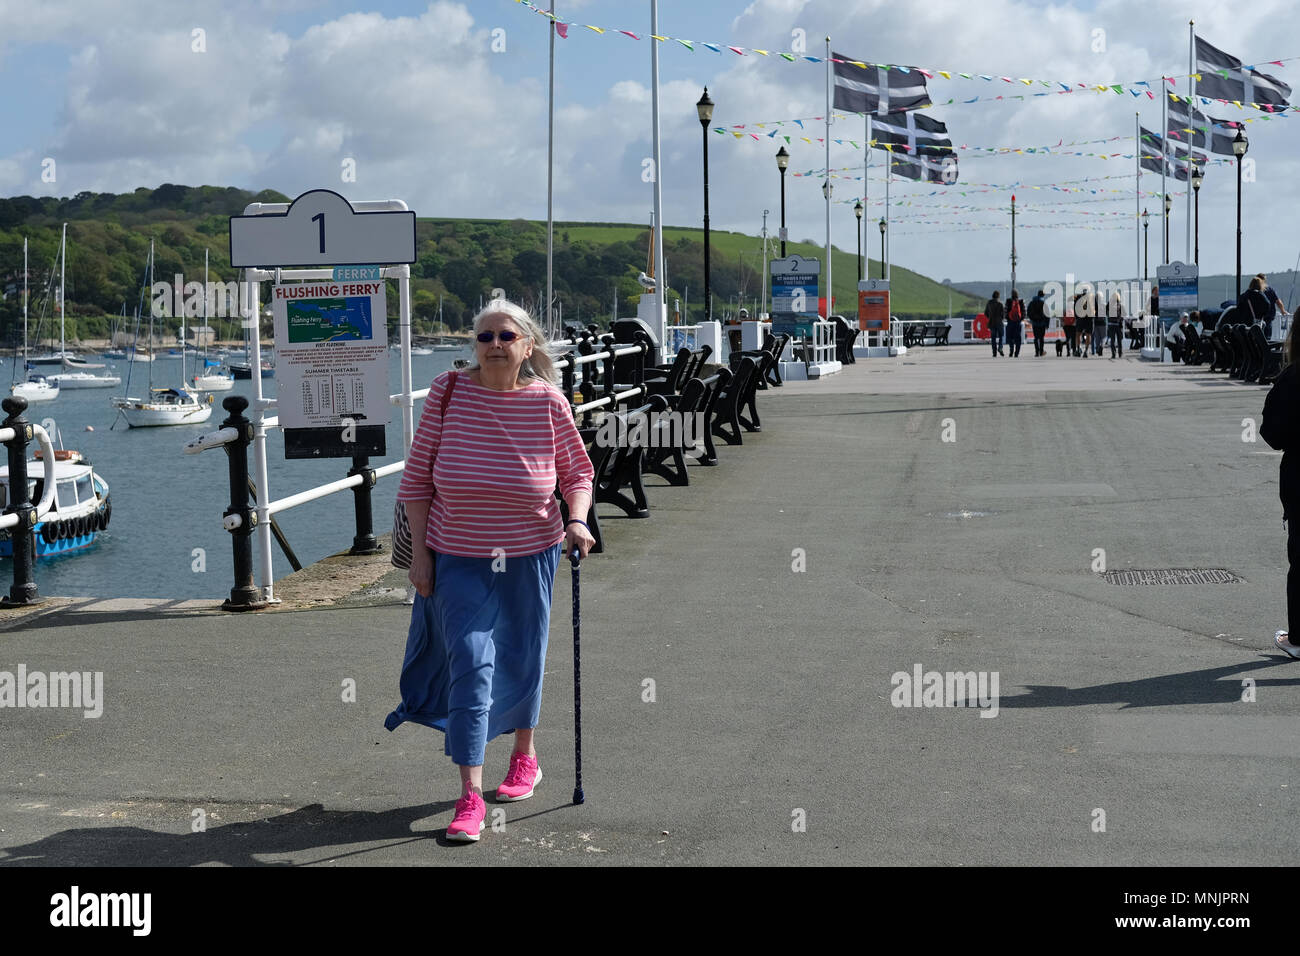 A lady with a walking stick in Falmouth, Cornwall. - Stock Image